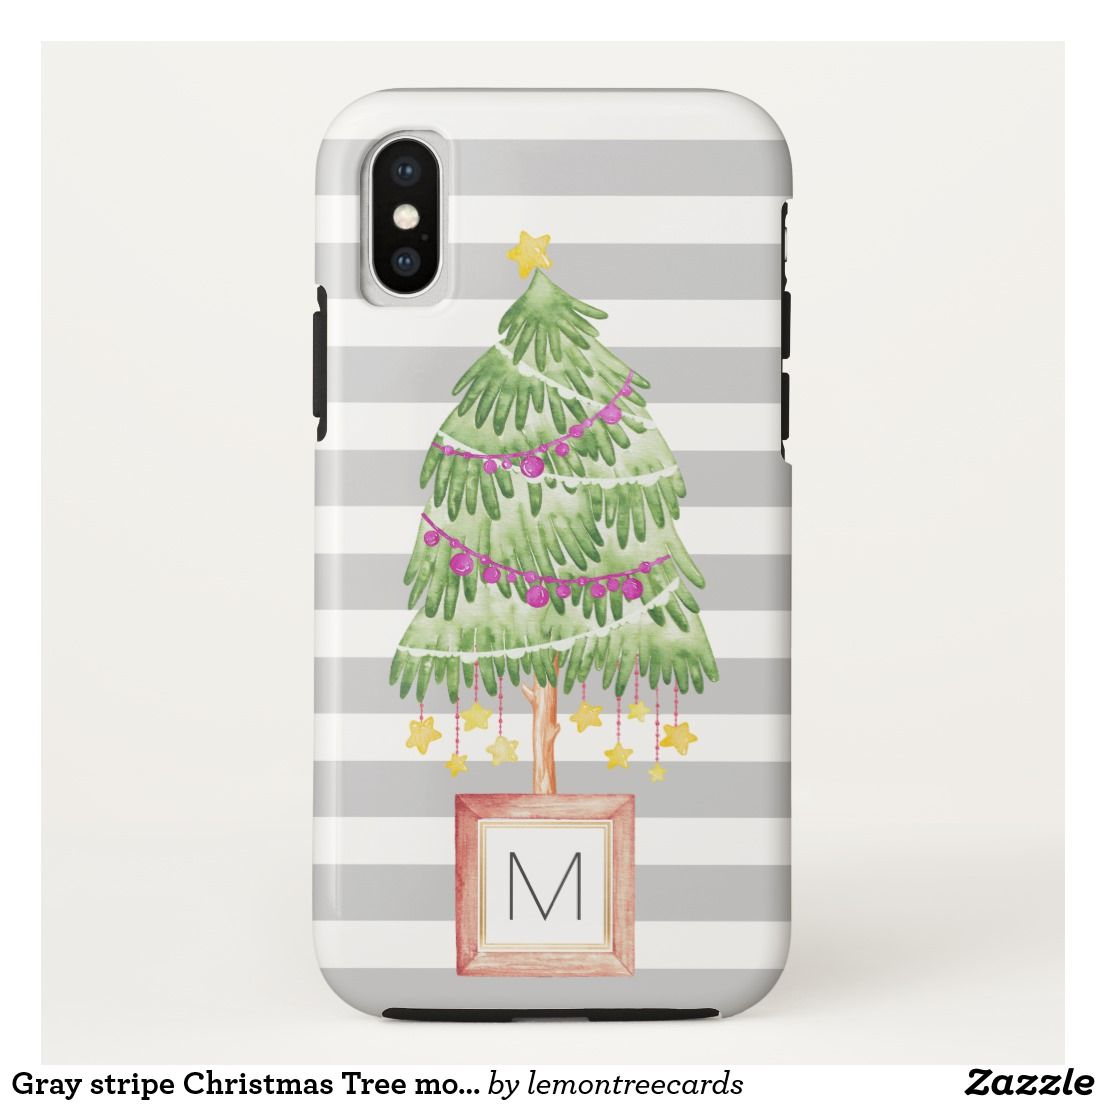 Gray Stripe Christmas Tree Monogram Iphone X Case  Grey Stripes